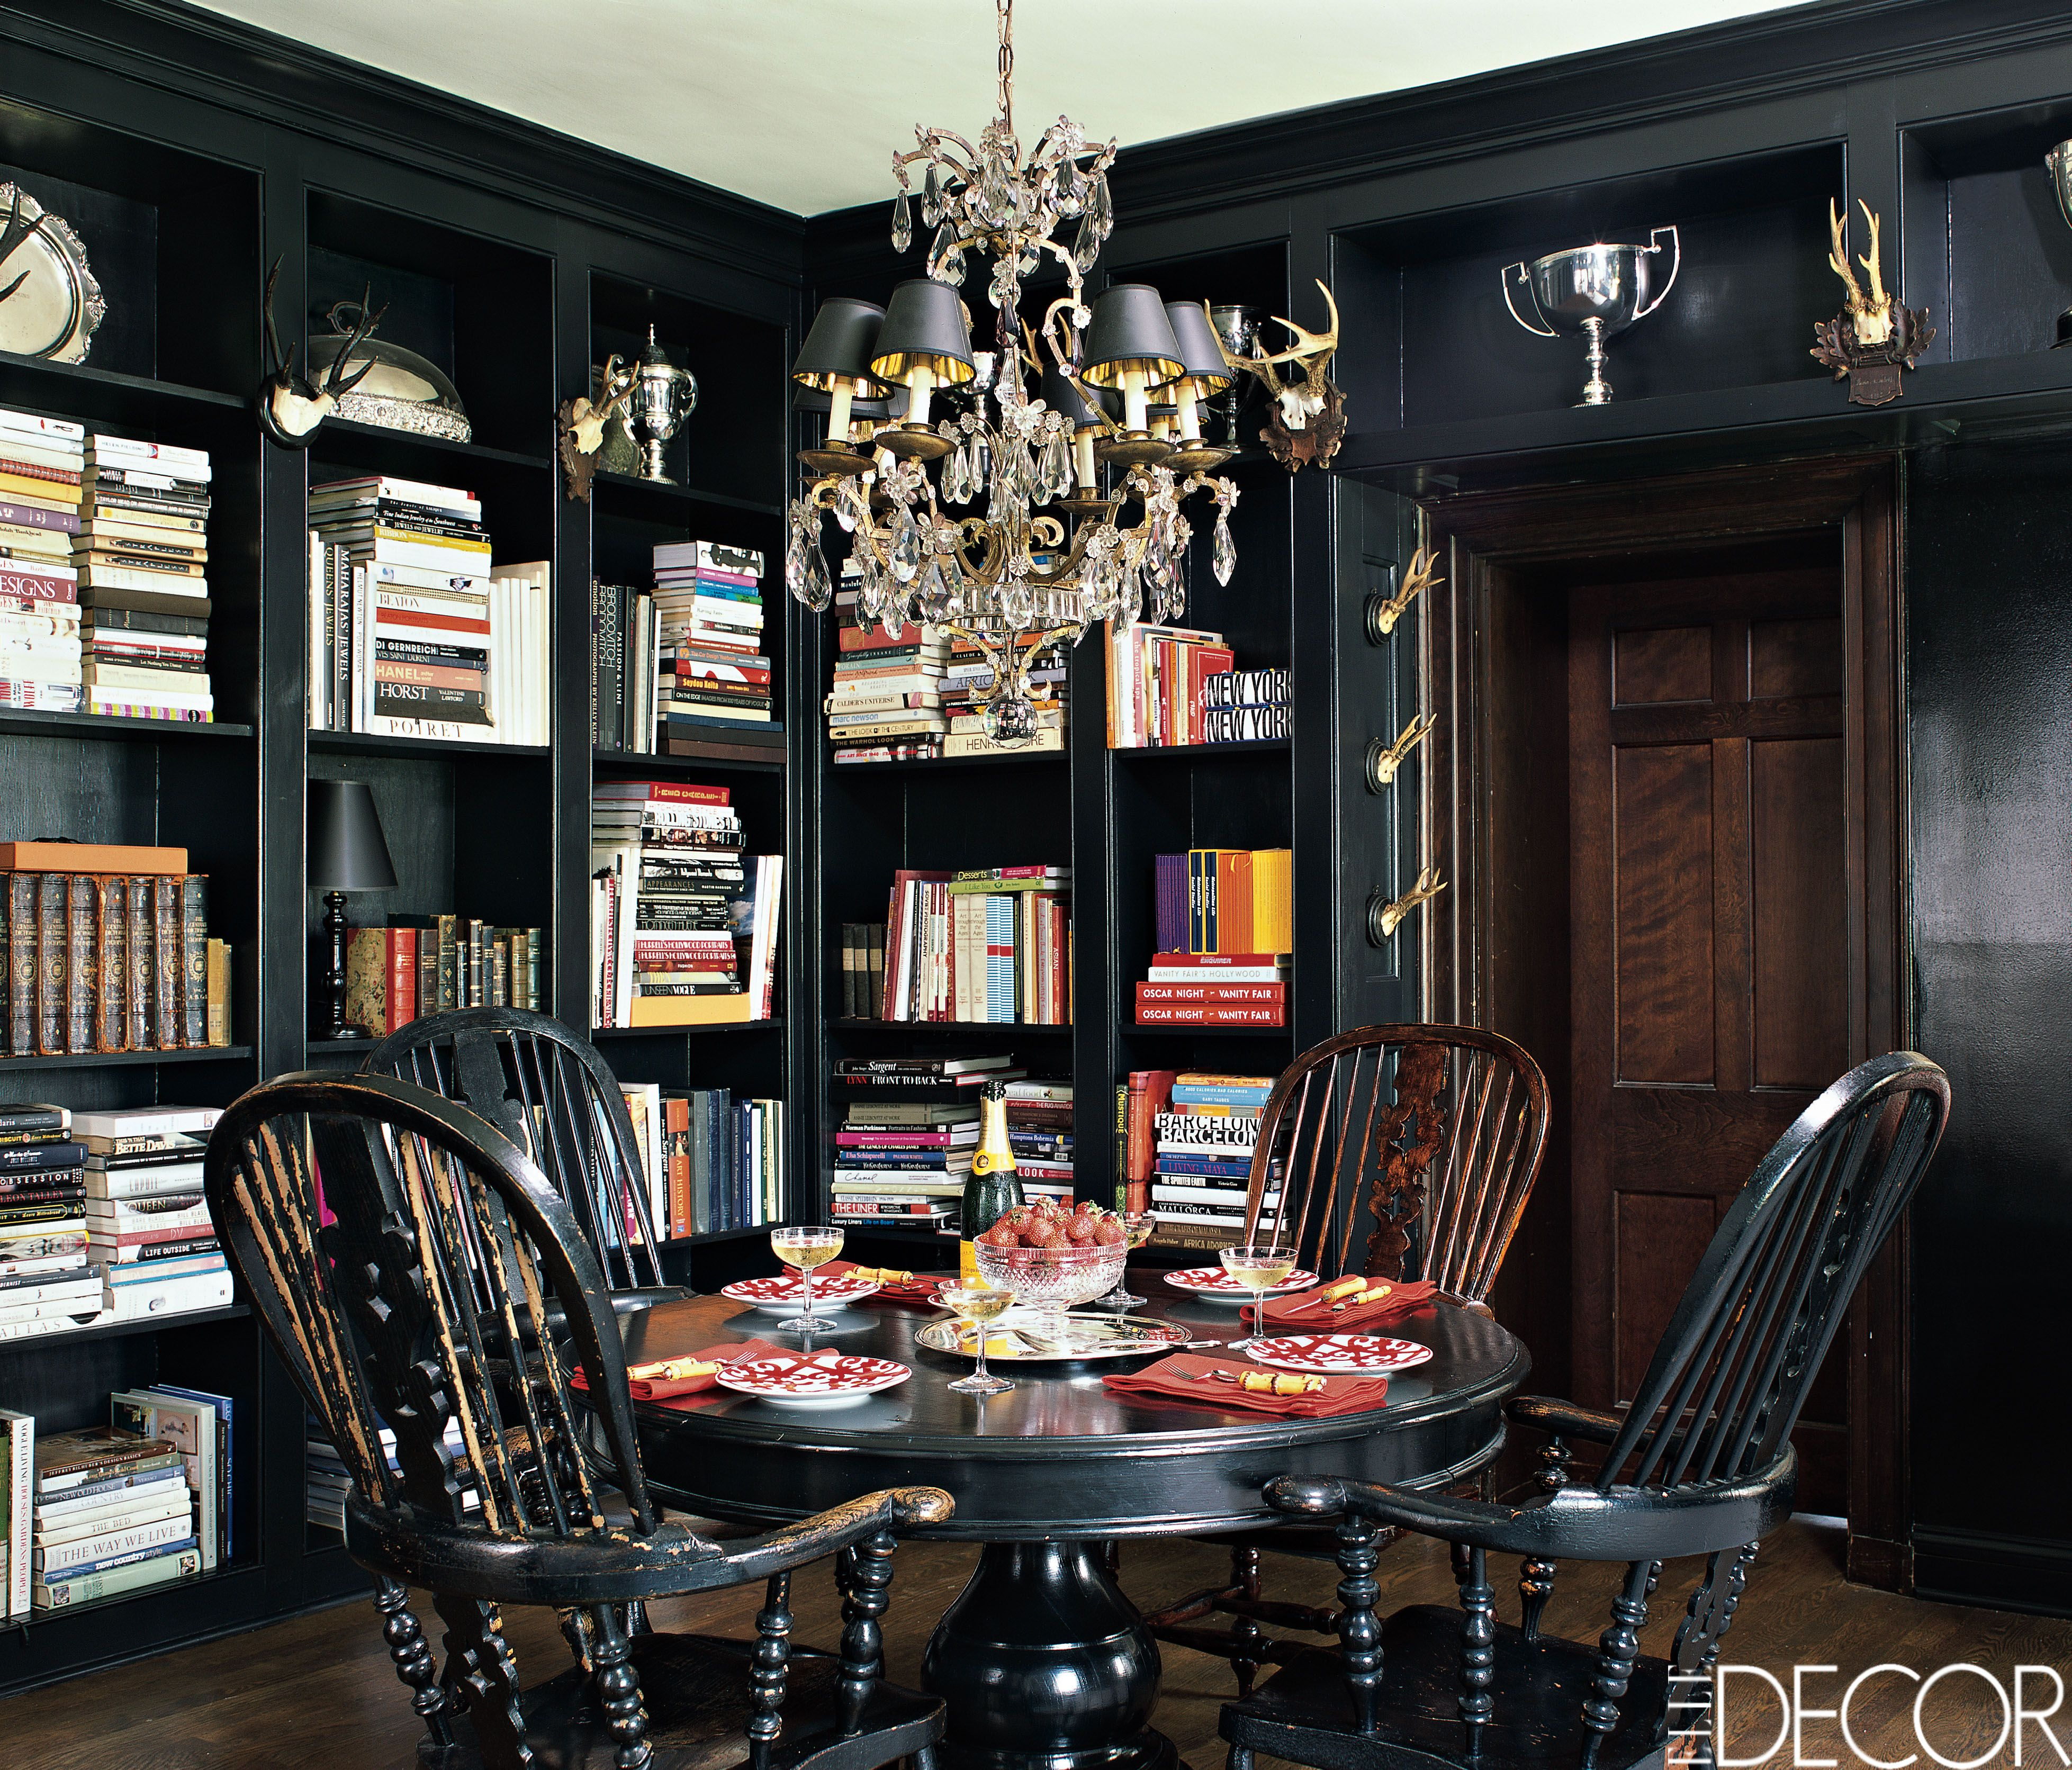 35 Black Room Decorating Ideas